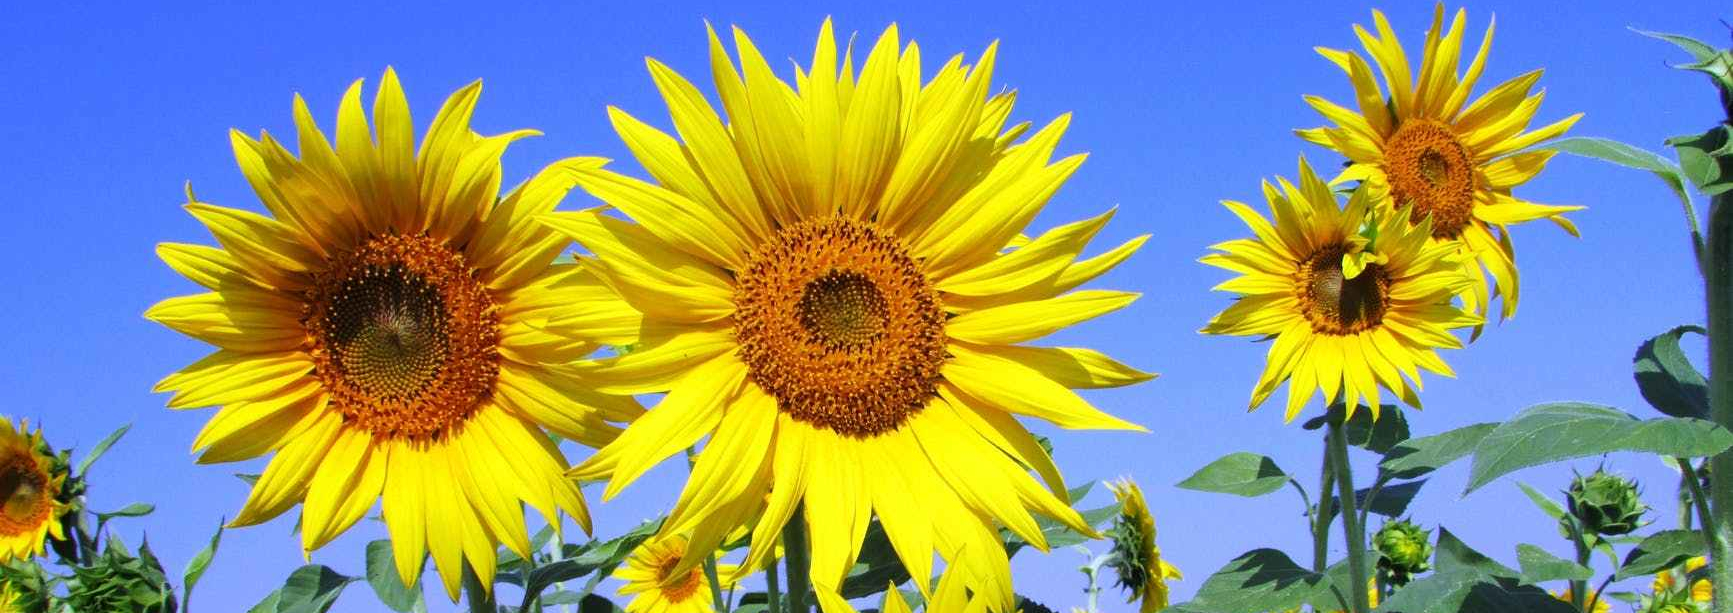 Sunflowers in full bloom against a bright, clear blue sky.